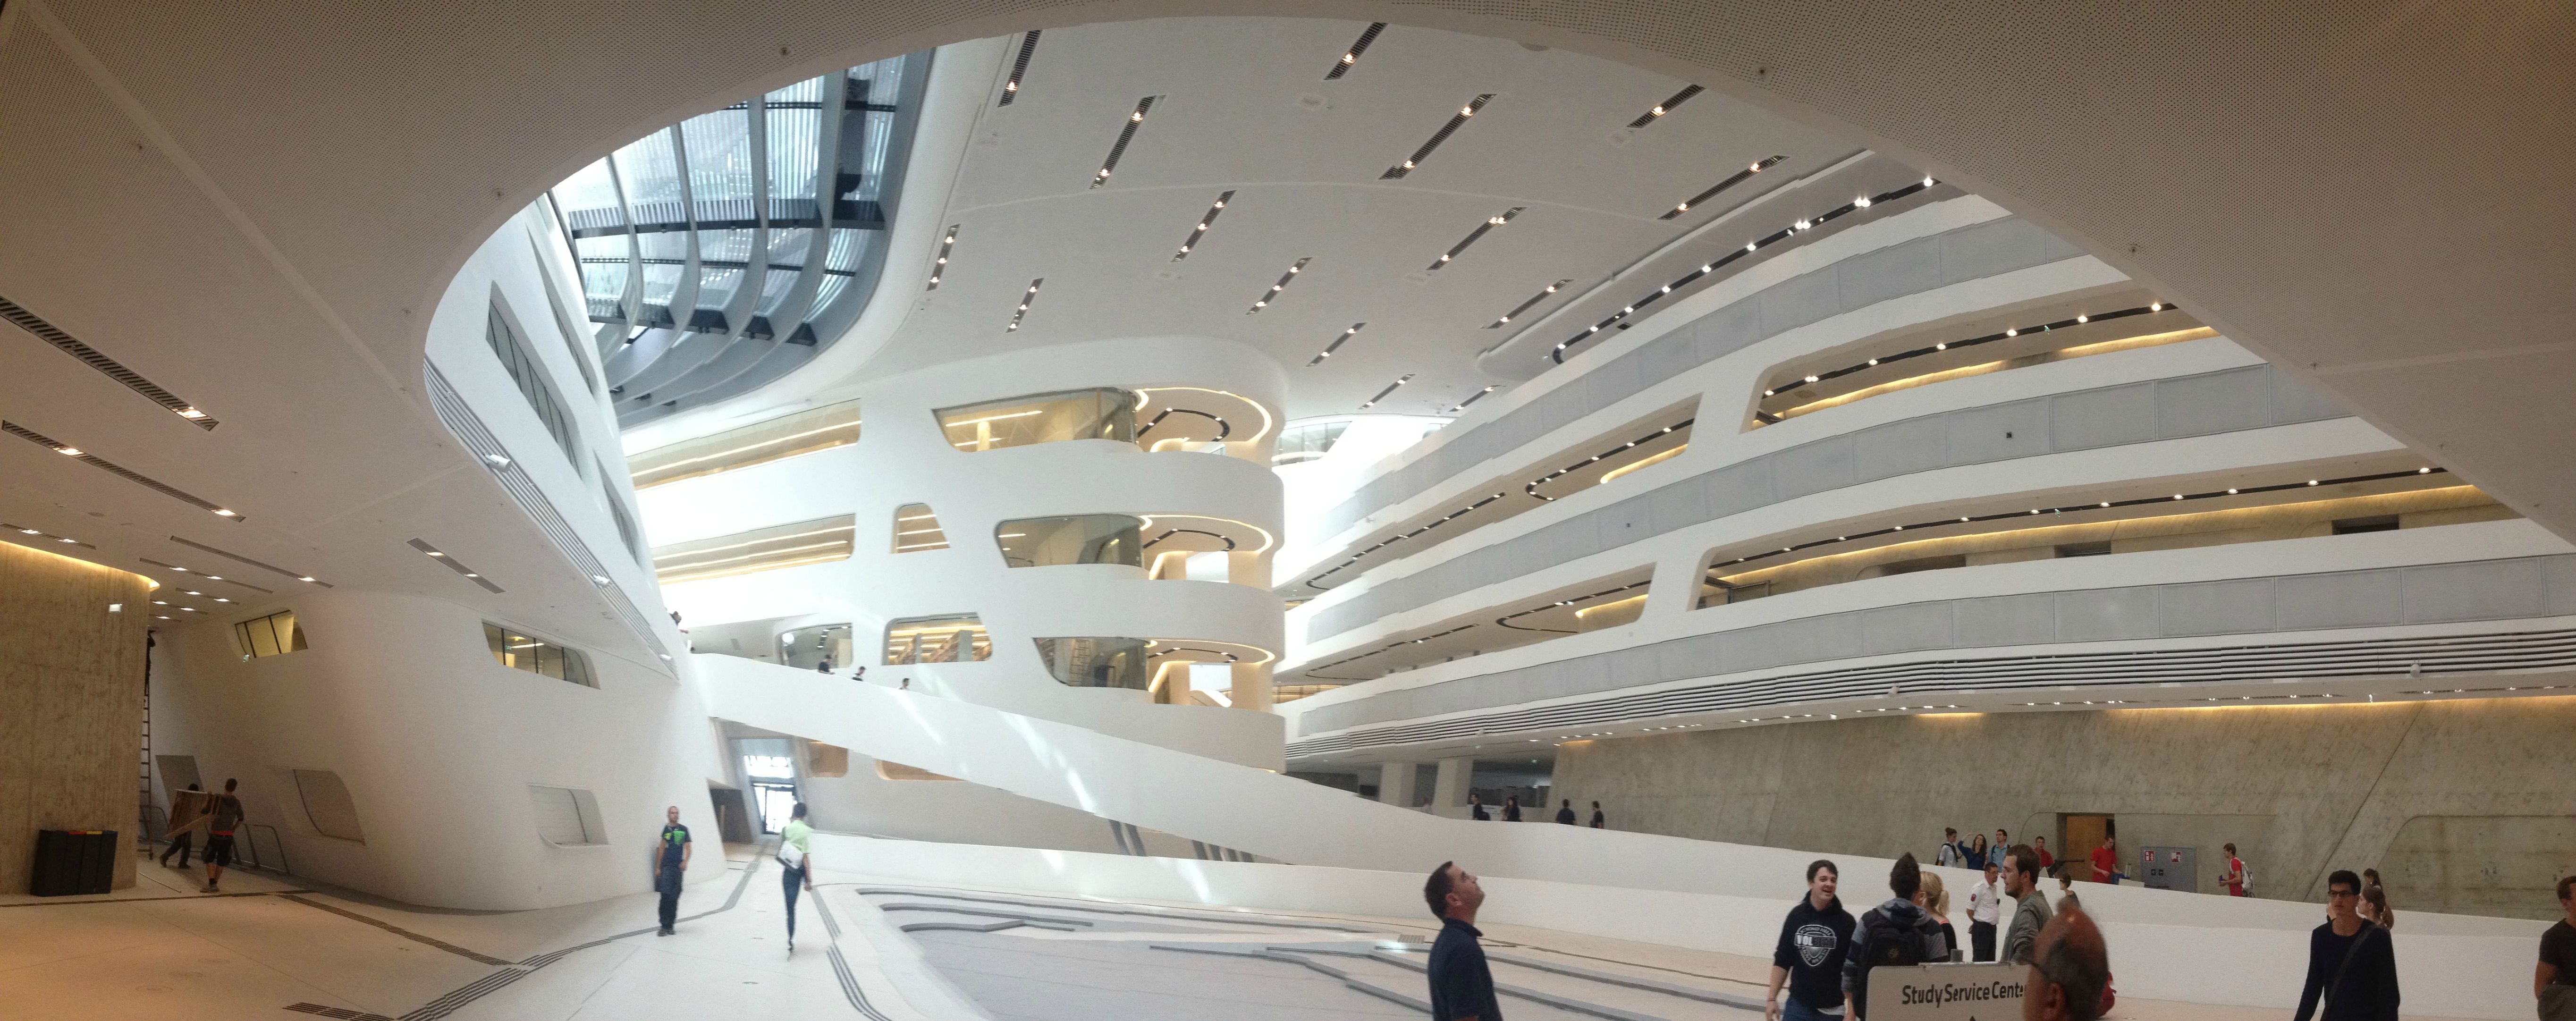 University of vienna talk to me about austria for Zaha hadid vienna